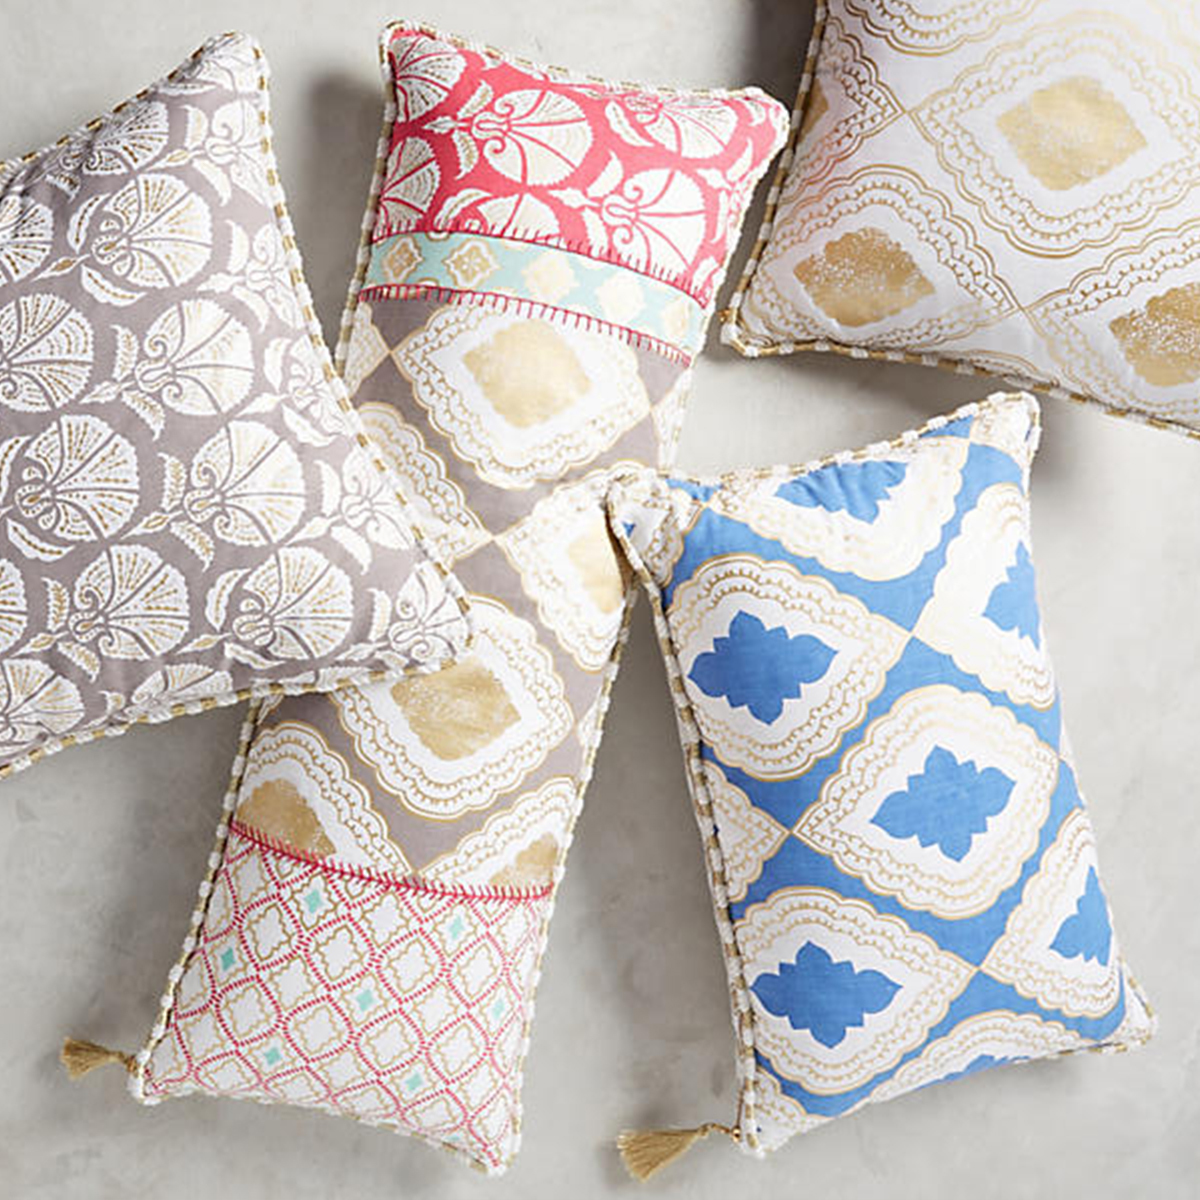 Colorful patterned throw pillows with fun gold tassels. photo